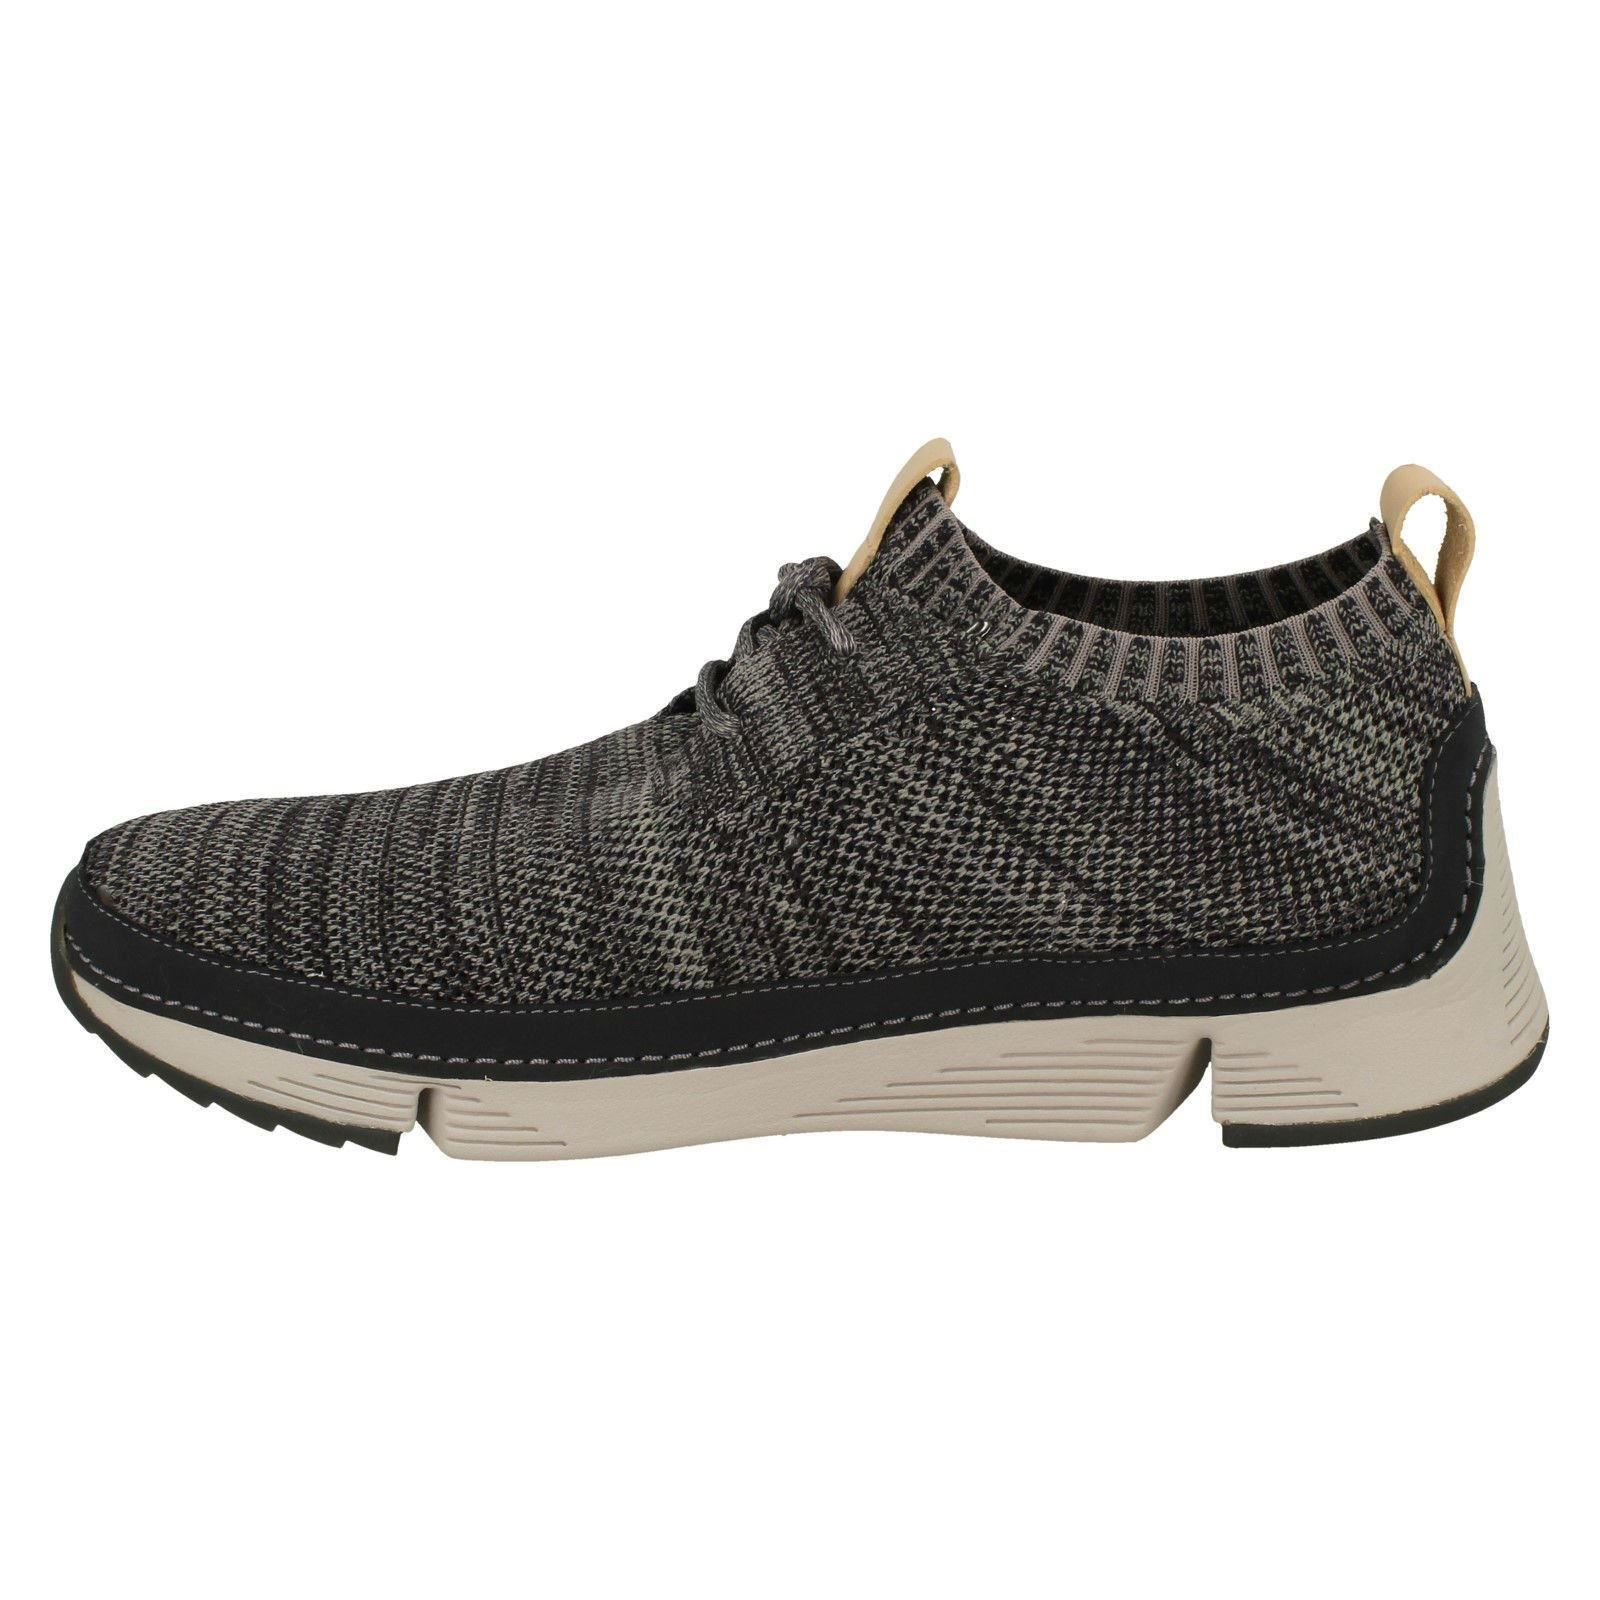 Mens-Clarks-Casual-Lace-Up-Trainers-Tri-Native thumbnail 10